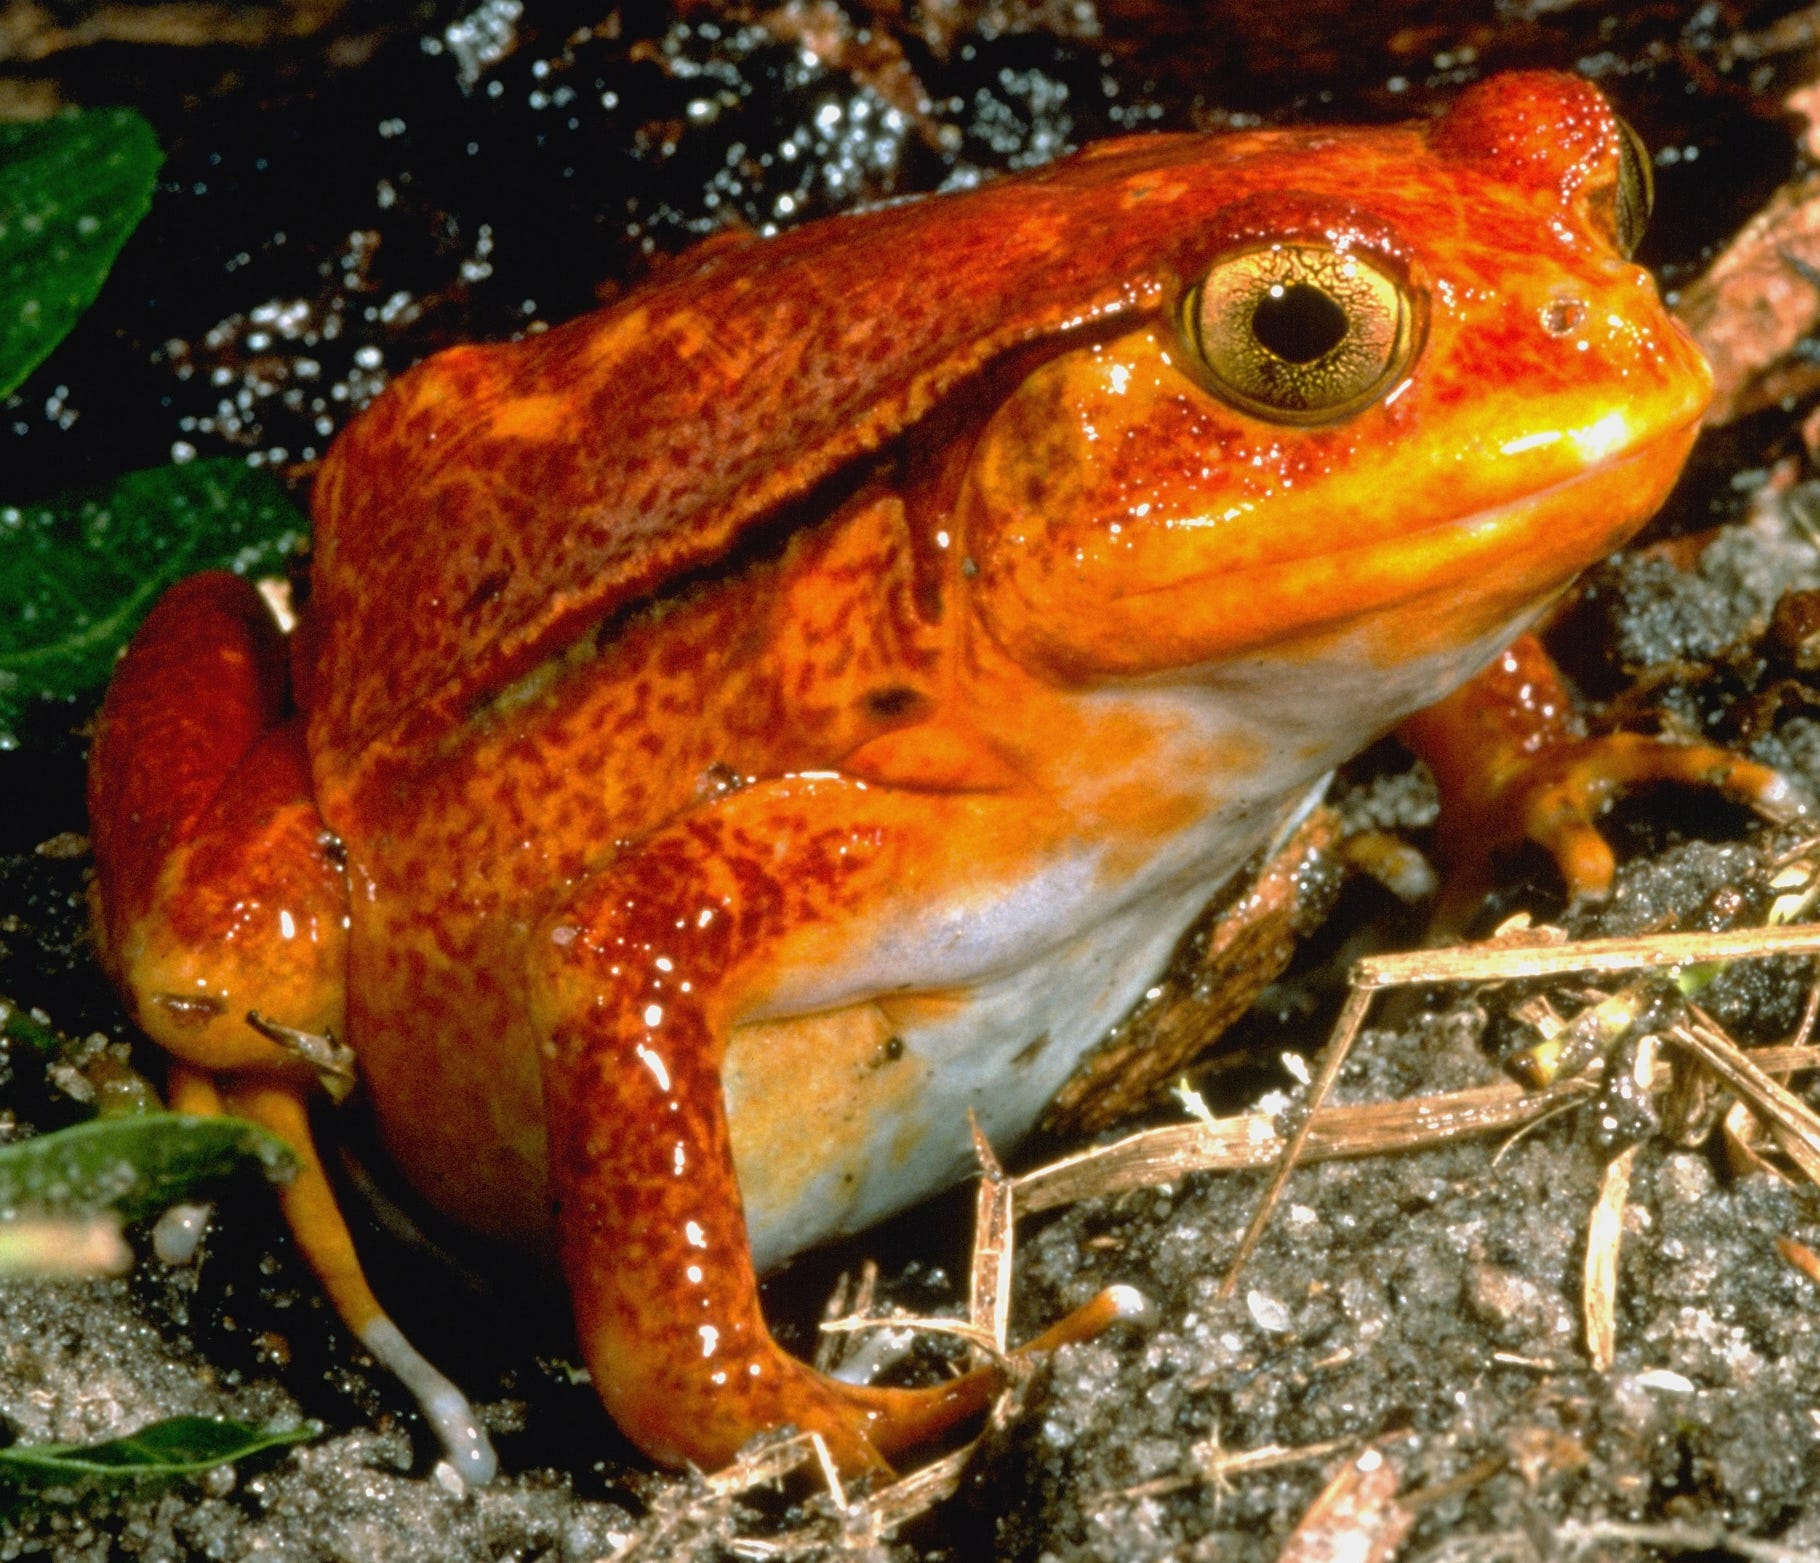 """A tomato frog, found in Madagascar, is one of the friendlies you'll see at """"Frogs!"""" - if you catch the Milwaukee Public Museum exhibit before it closes Sunday."""